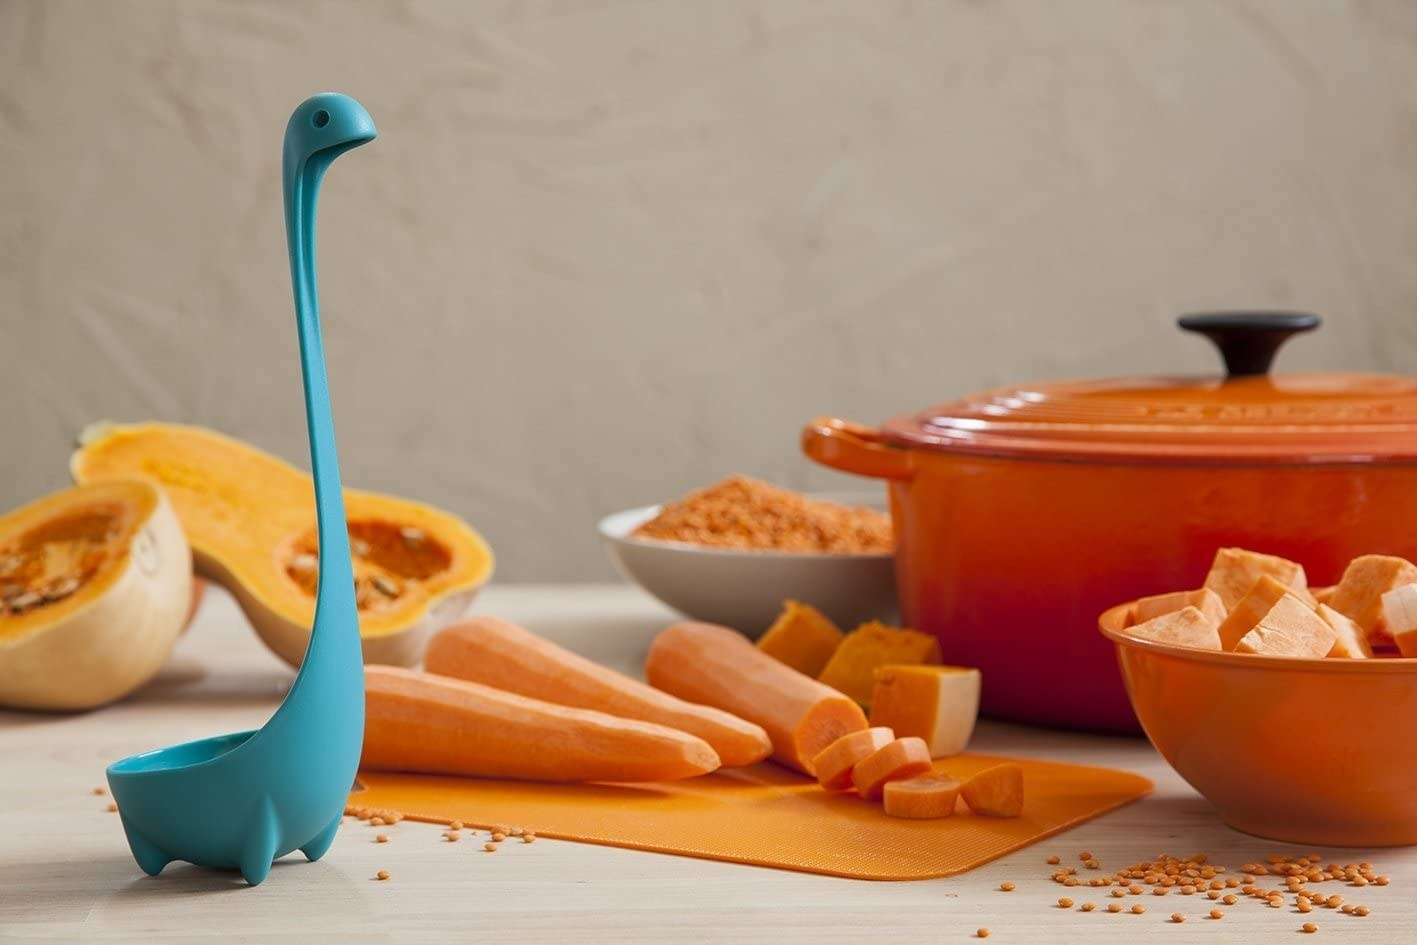 Teal ladle shaped like the loch ness sea monster